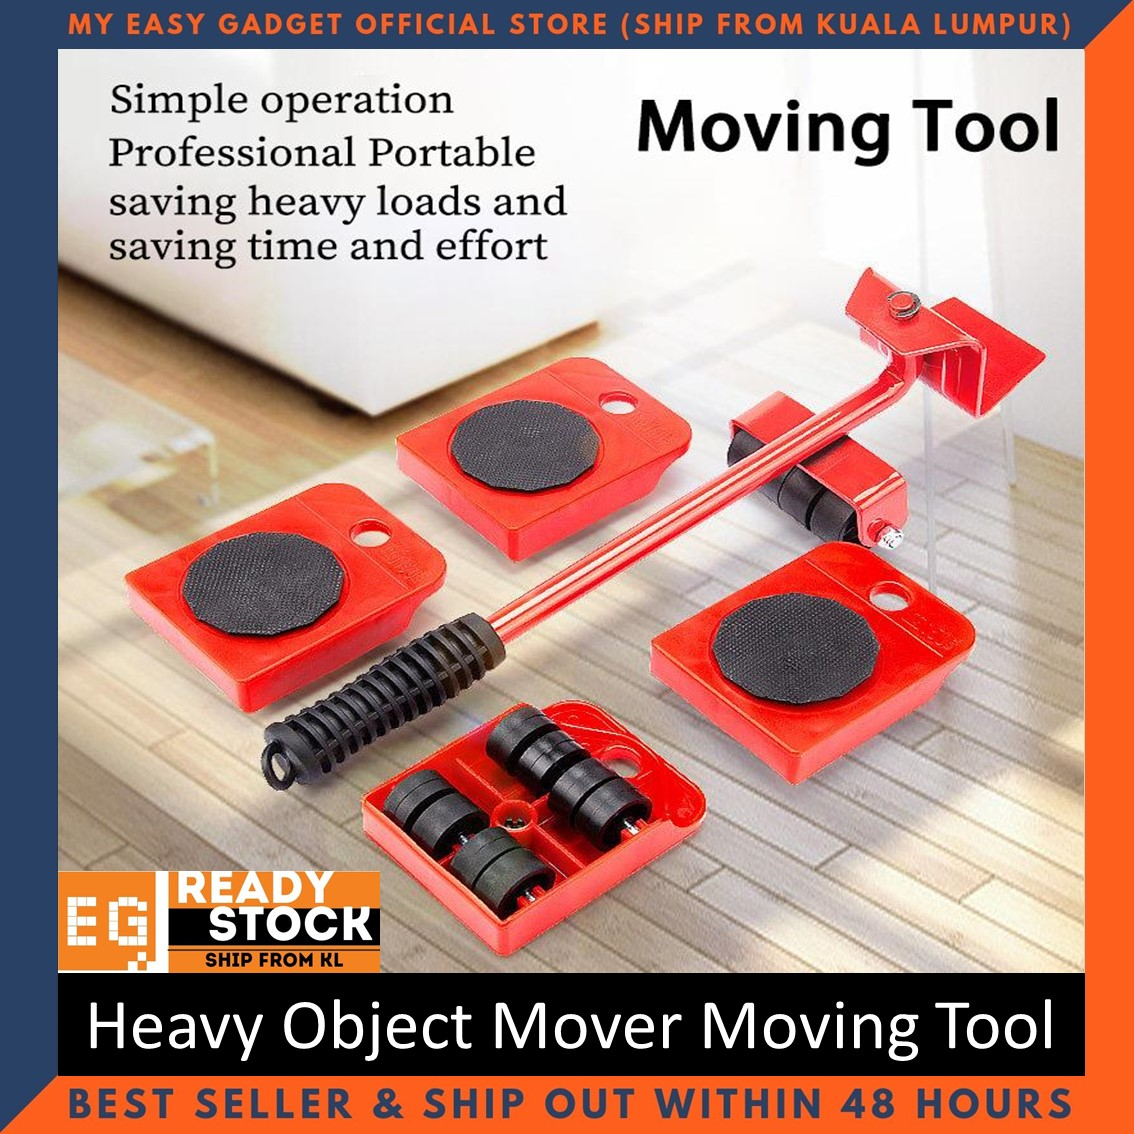 Heavy Duty Lifter Furniture Lifter Easy Slider All Directions Mover Carrying Glider Tool Hand Moving Transport Set